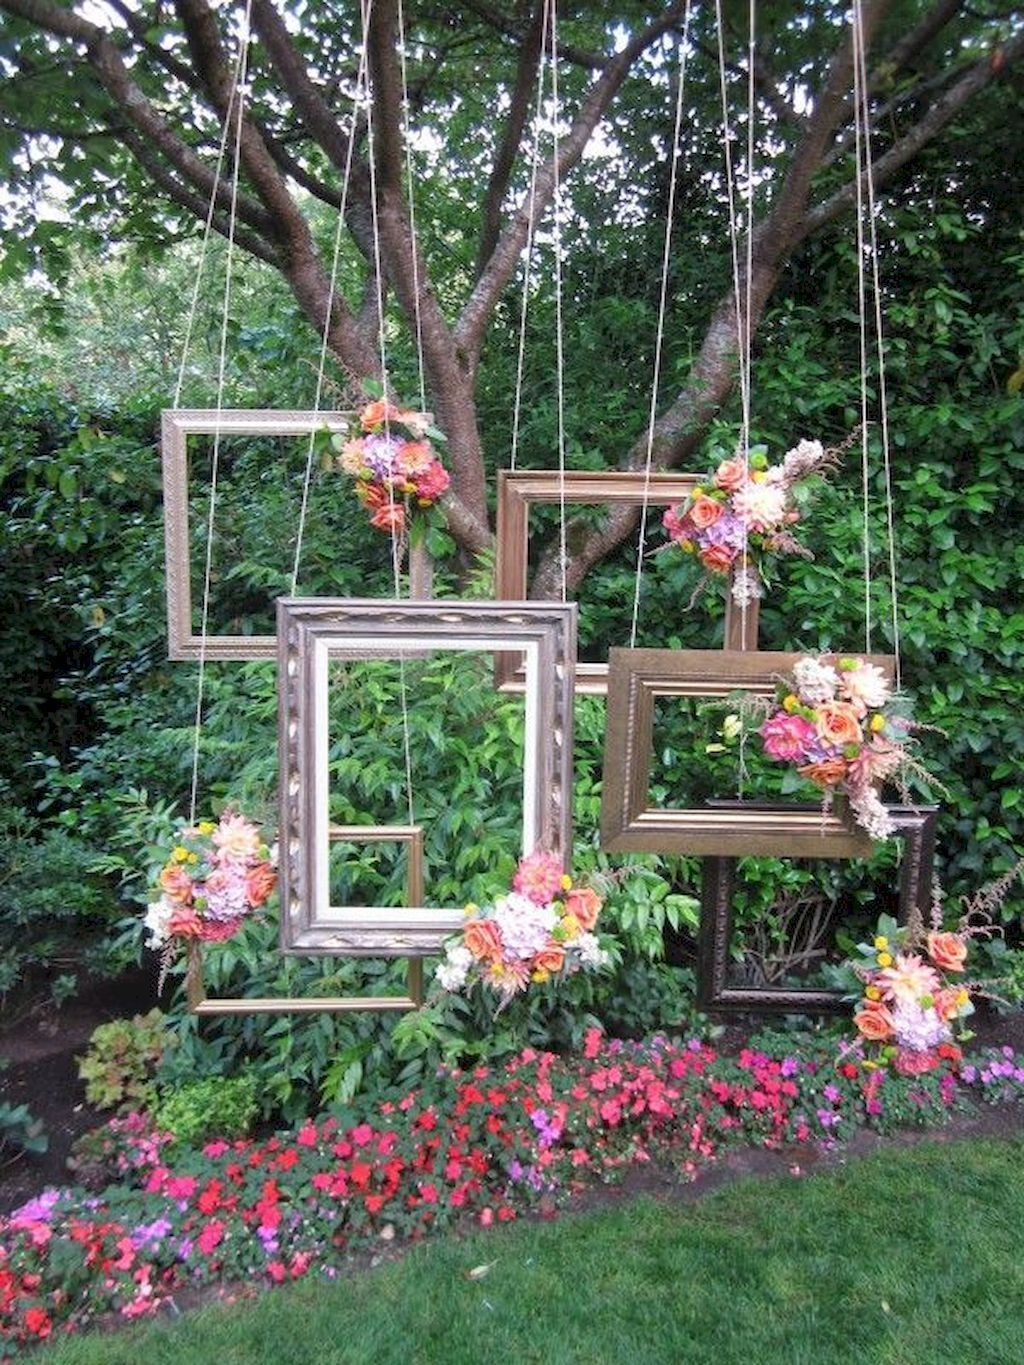 48 elegant outdoor wedding decor ideas on a budget wedding awesome 48 elegant outdoor wedding decor ideas on a budget httpsbitecloth junglespirit Images